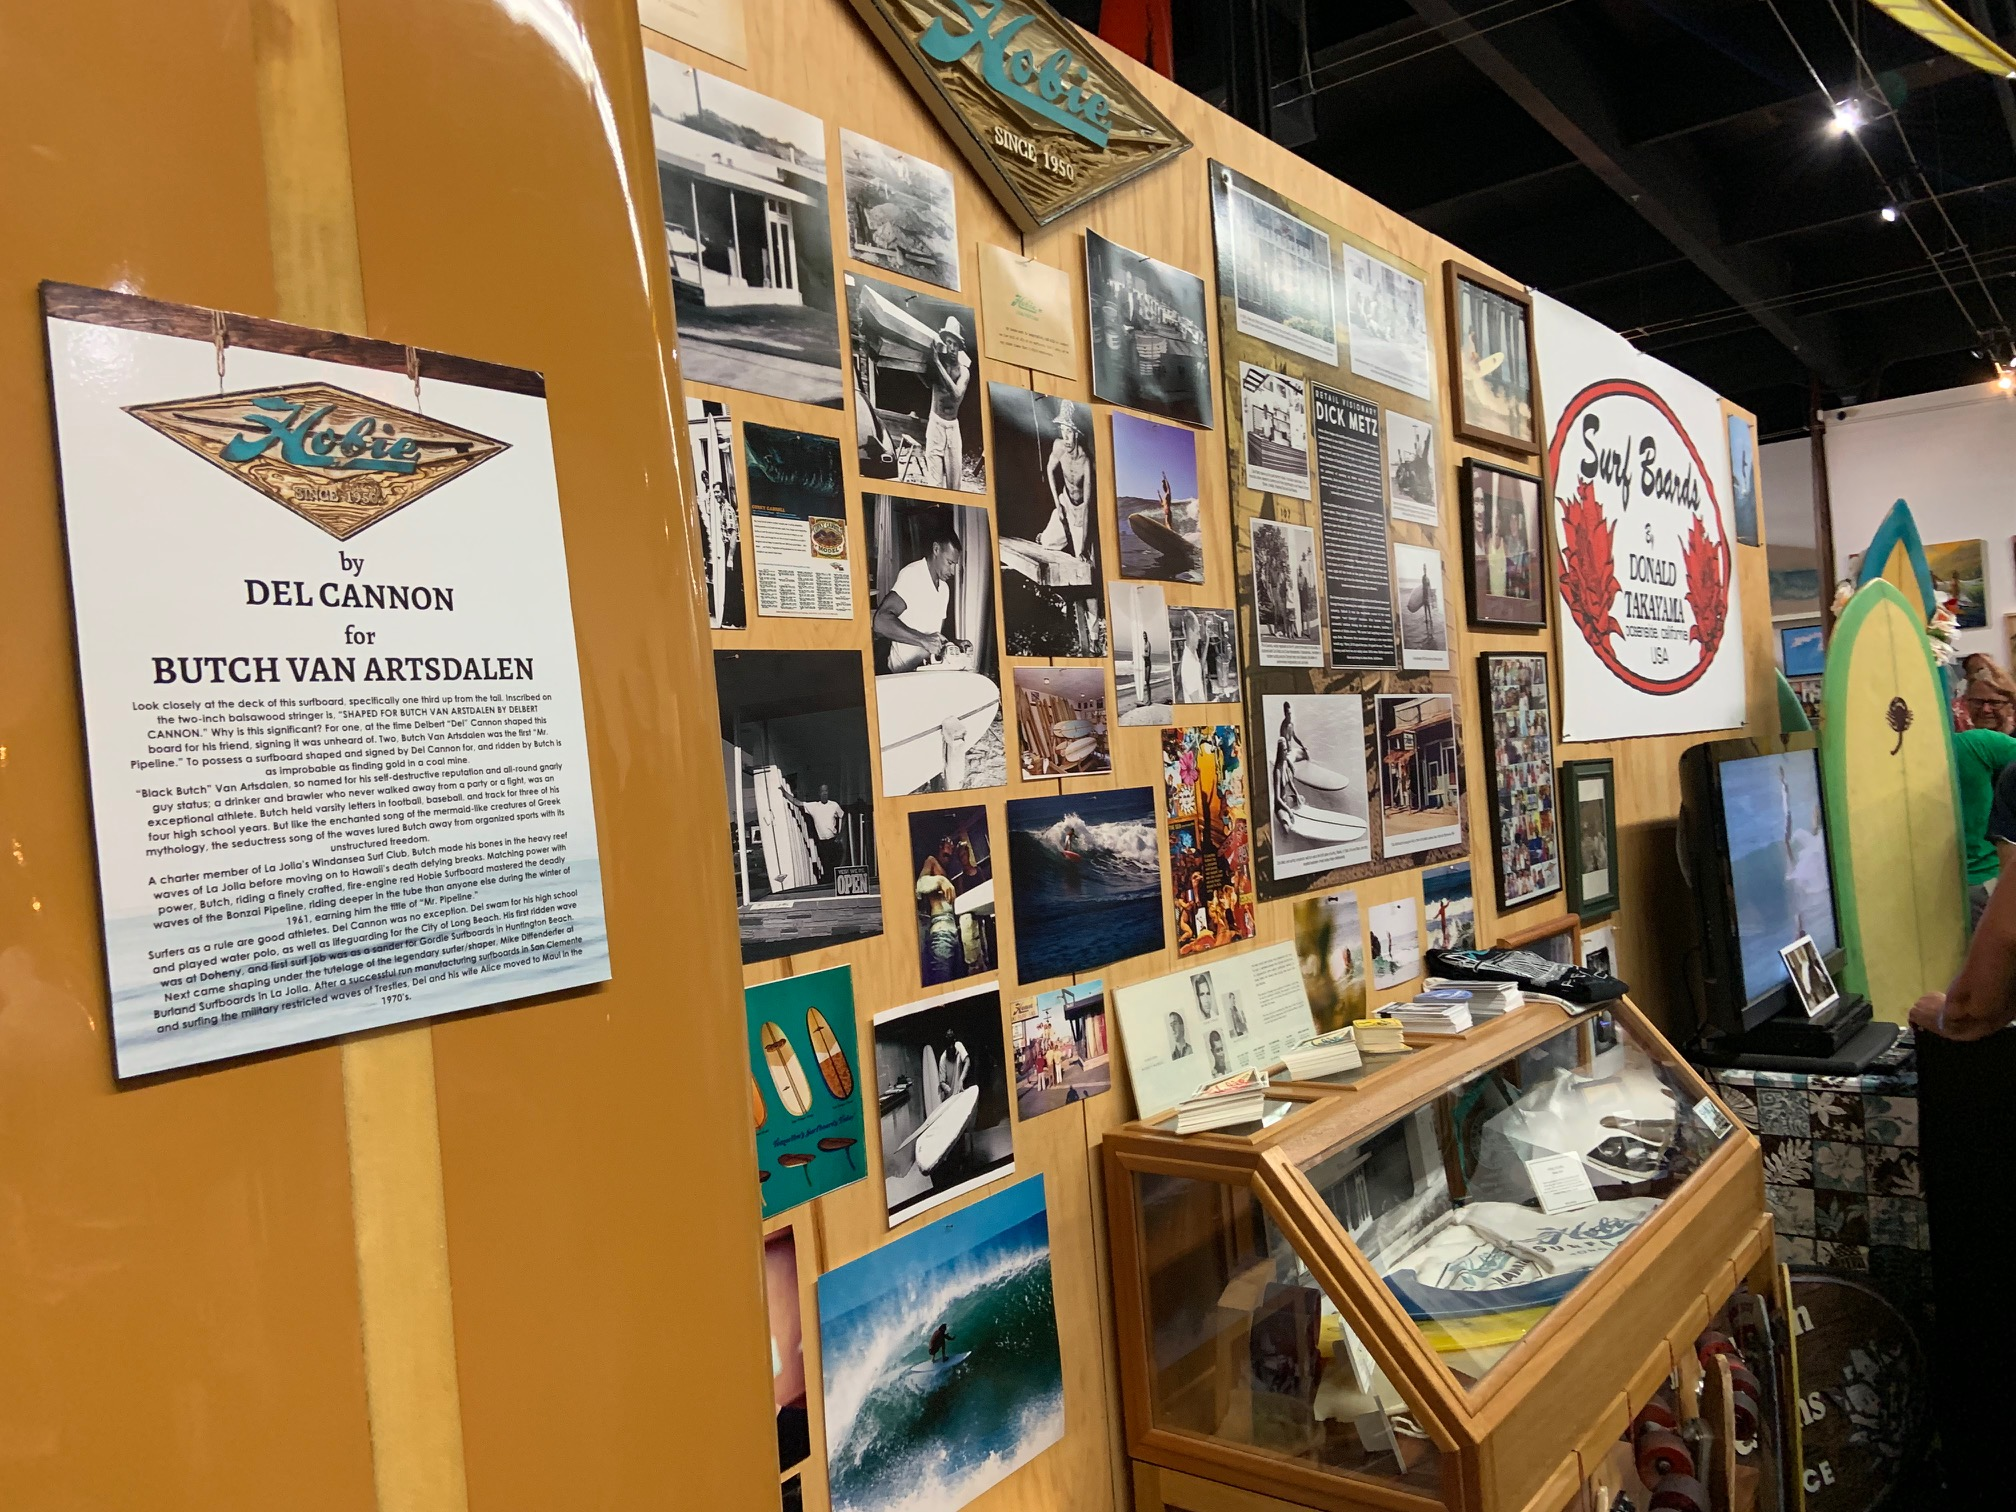 California's original surf shops, hangouts for surfers up and down the coast, are celebrated in 'Temples of Stoke' exhibit